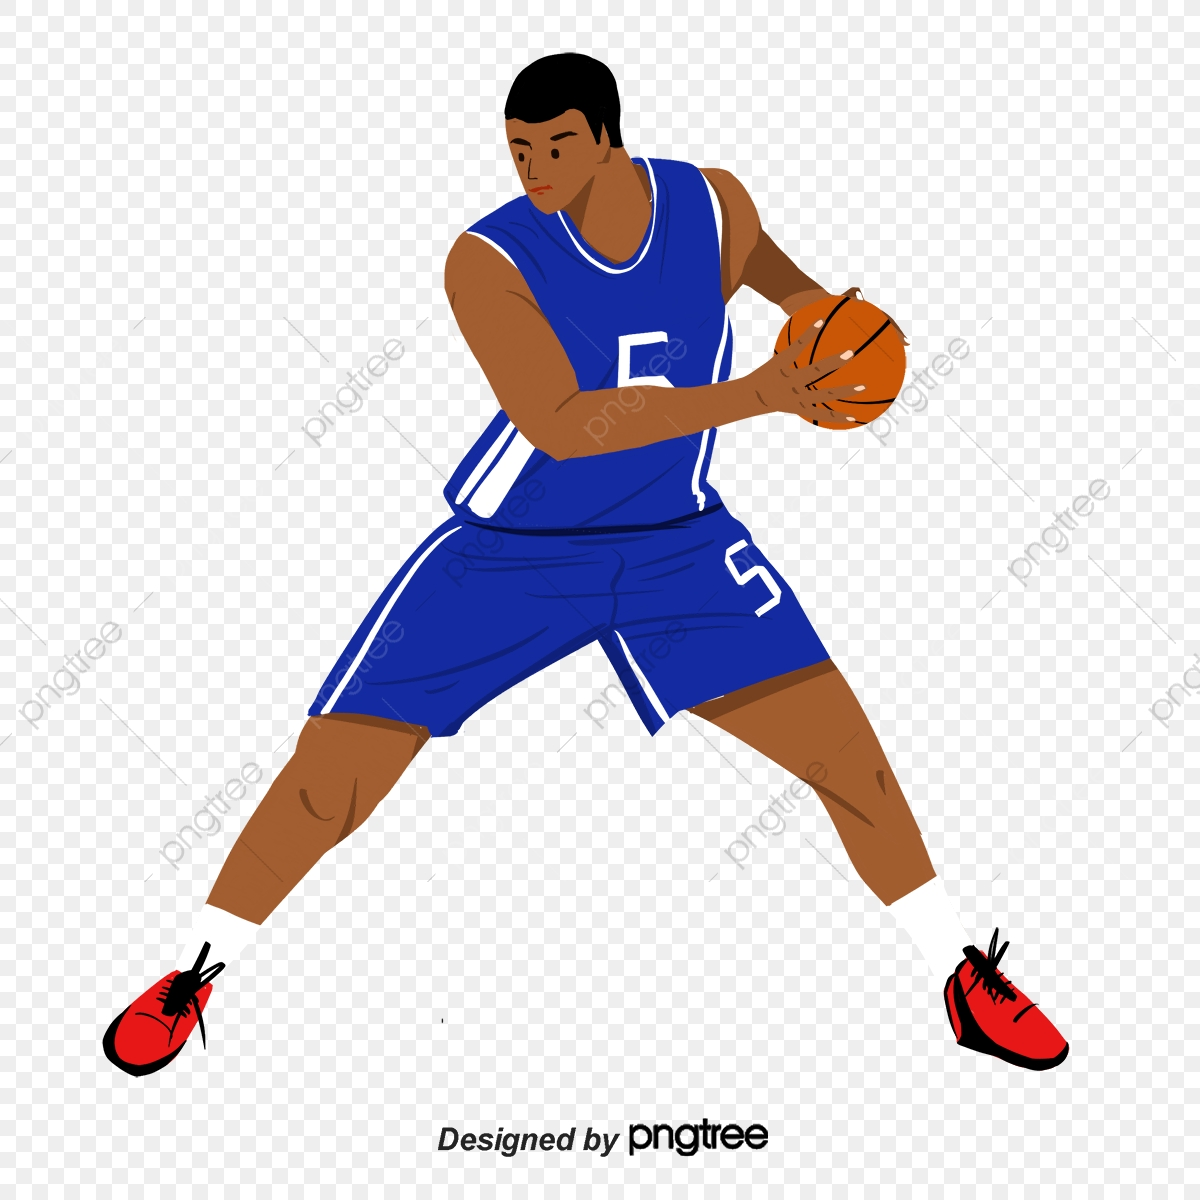 Colorful cartoon player material. Clipart basketball character